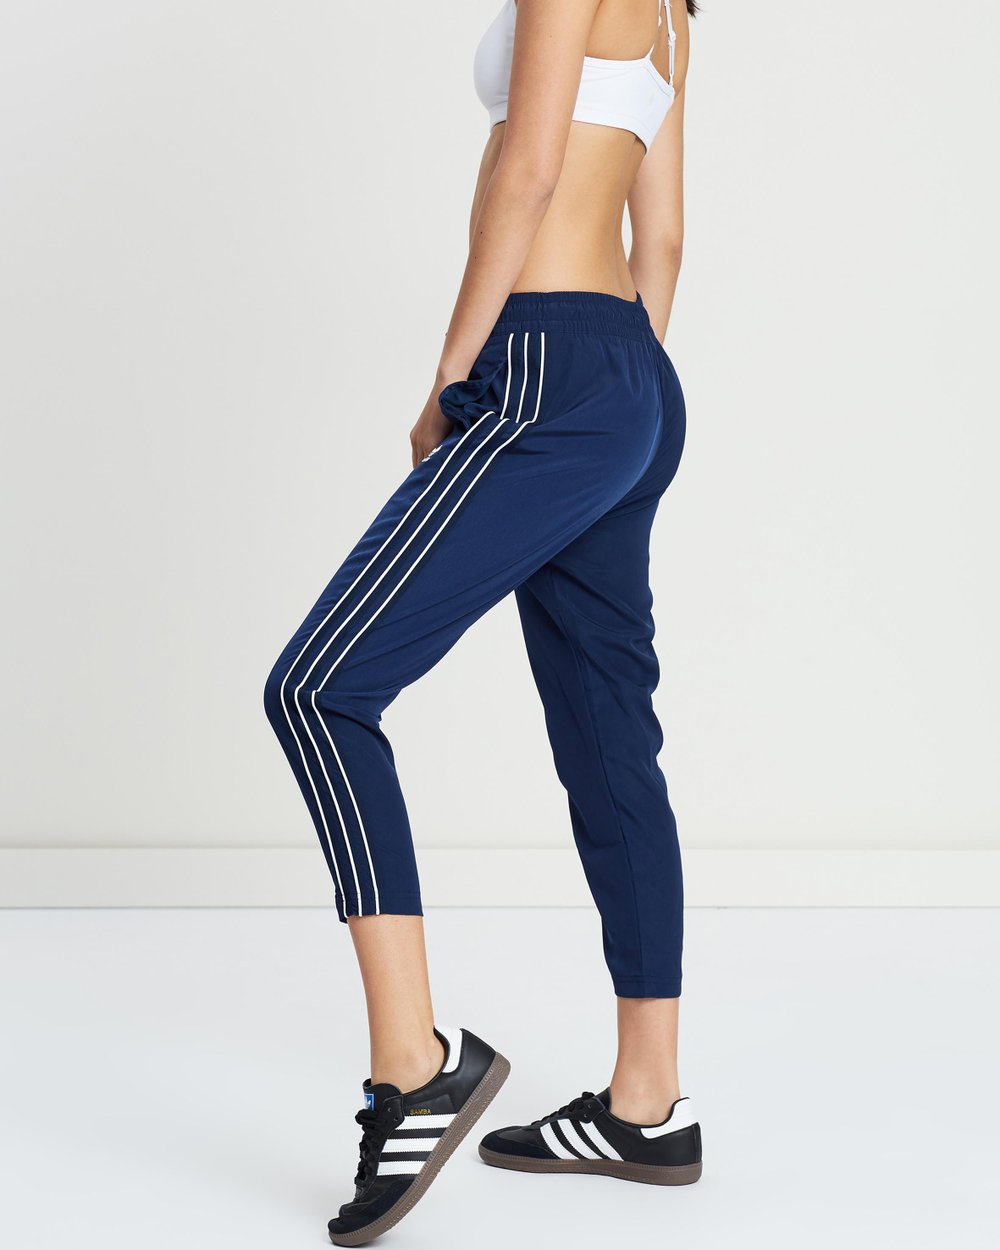 d15f7d49515e Styling Complements Cropped Pants by adidas Originals Online